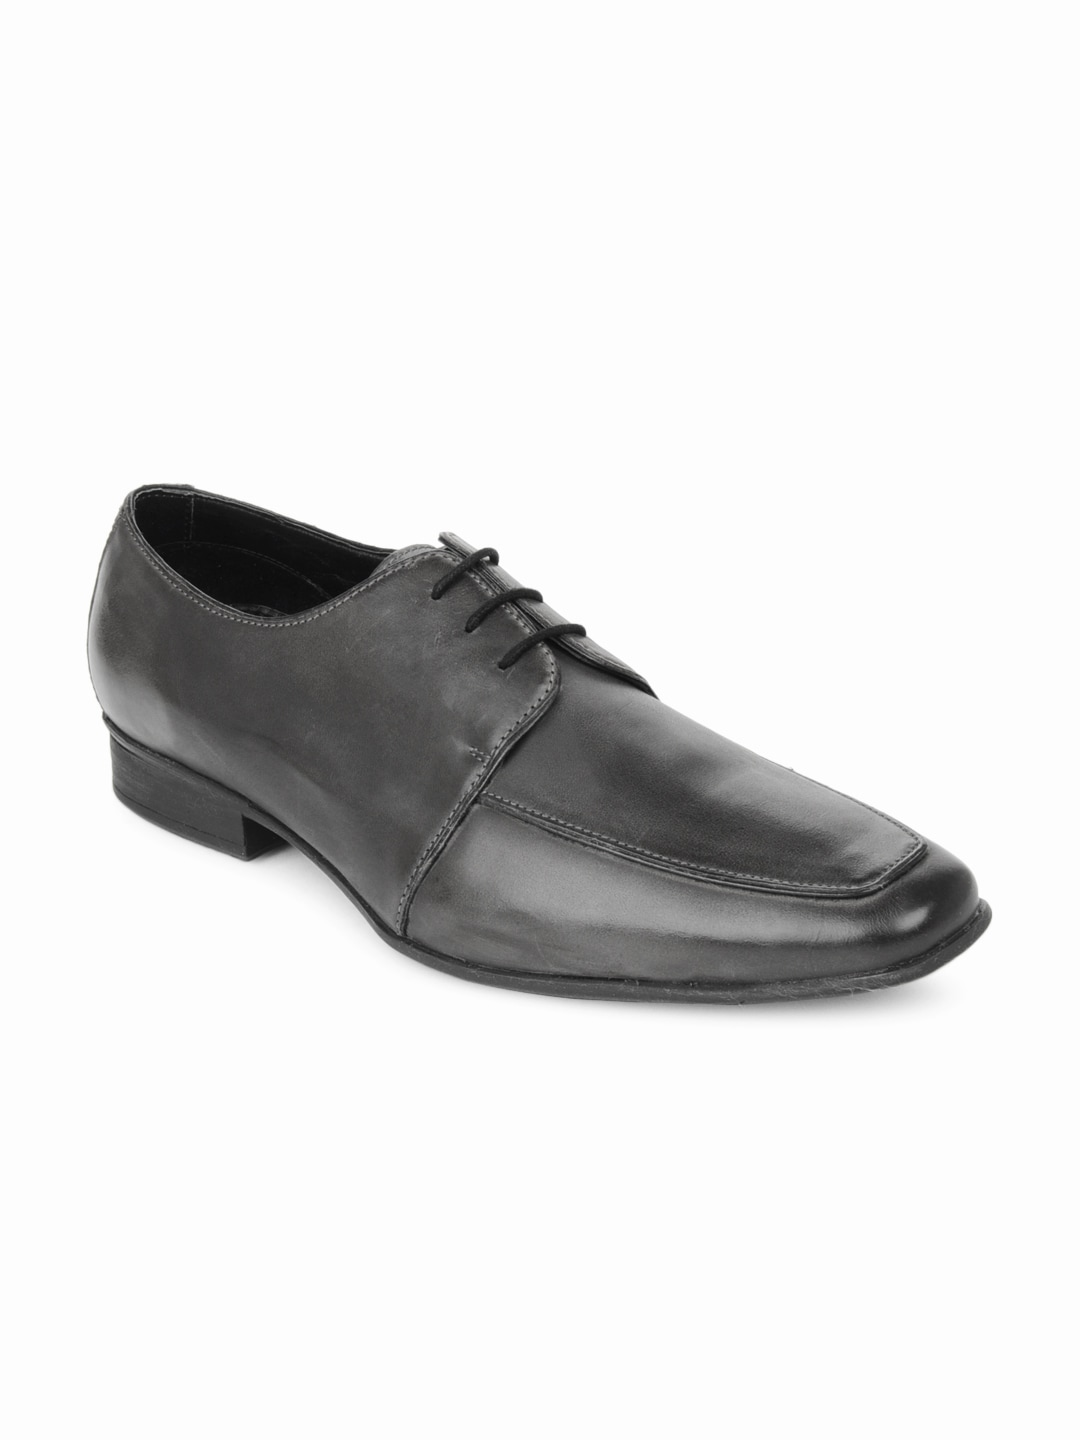 Ruosh Work Semi-Formal Men Grey Two Tone Finish Leather Derby Shoes